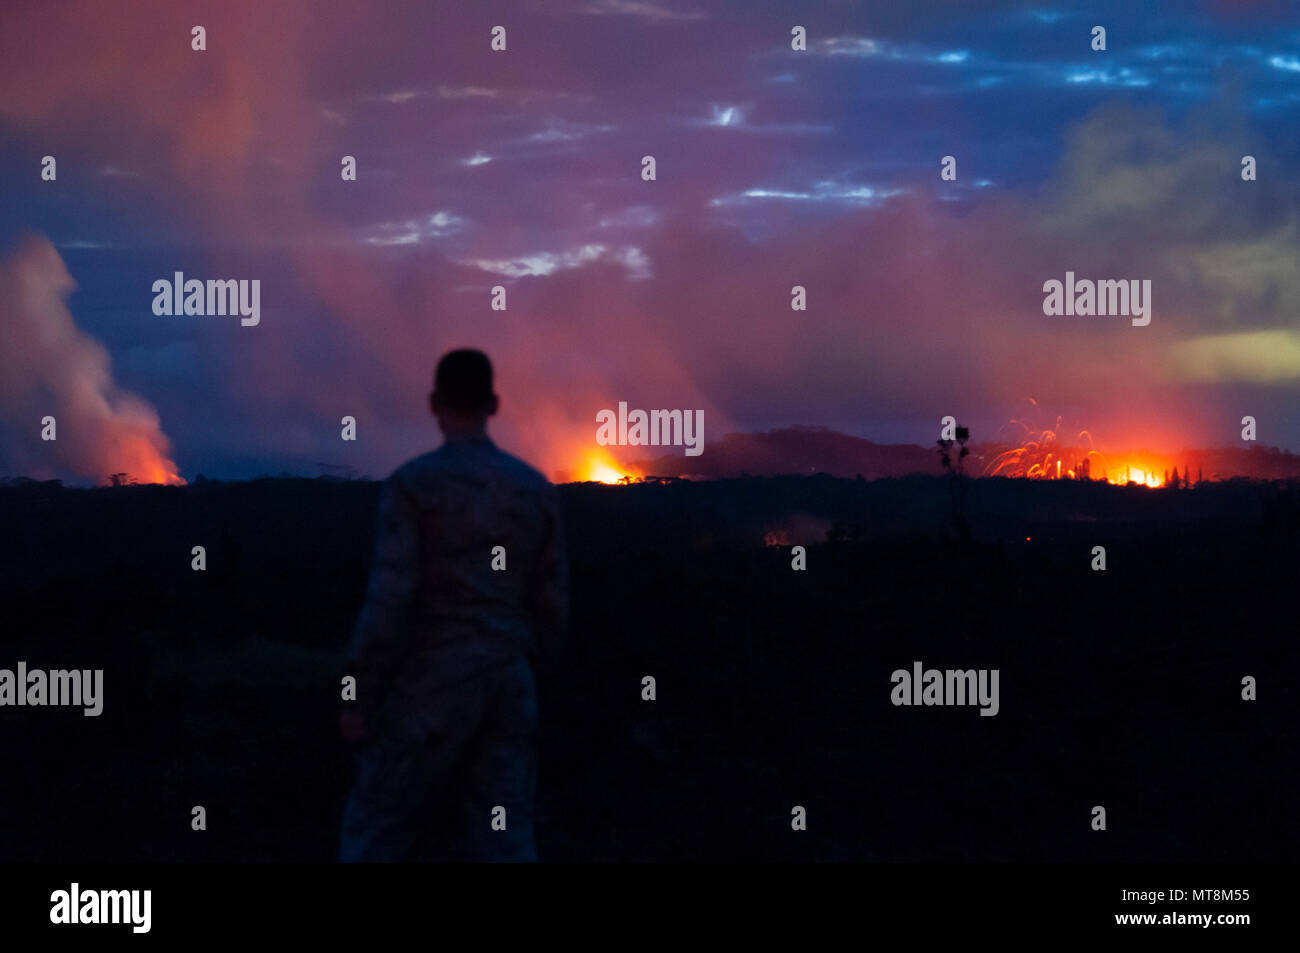 A Hawaii Air National Guard Airman observes three lava fissures May 15, 2018, at Leilani Estates and Lanipuna Gardens subdivisions, Pahoa, Hawaii. In response to the ongoing outbreak, more than 100 members of the Hawaii National Guard have been assisting Hawaii County agencies as part of an operation called Task Force Hawaii. (U.S. Air National Guard photo by Senior Airman John Linzmeier) - Stock Image